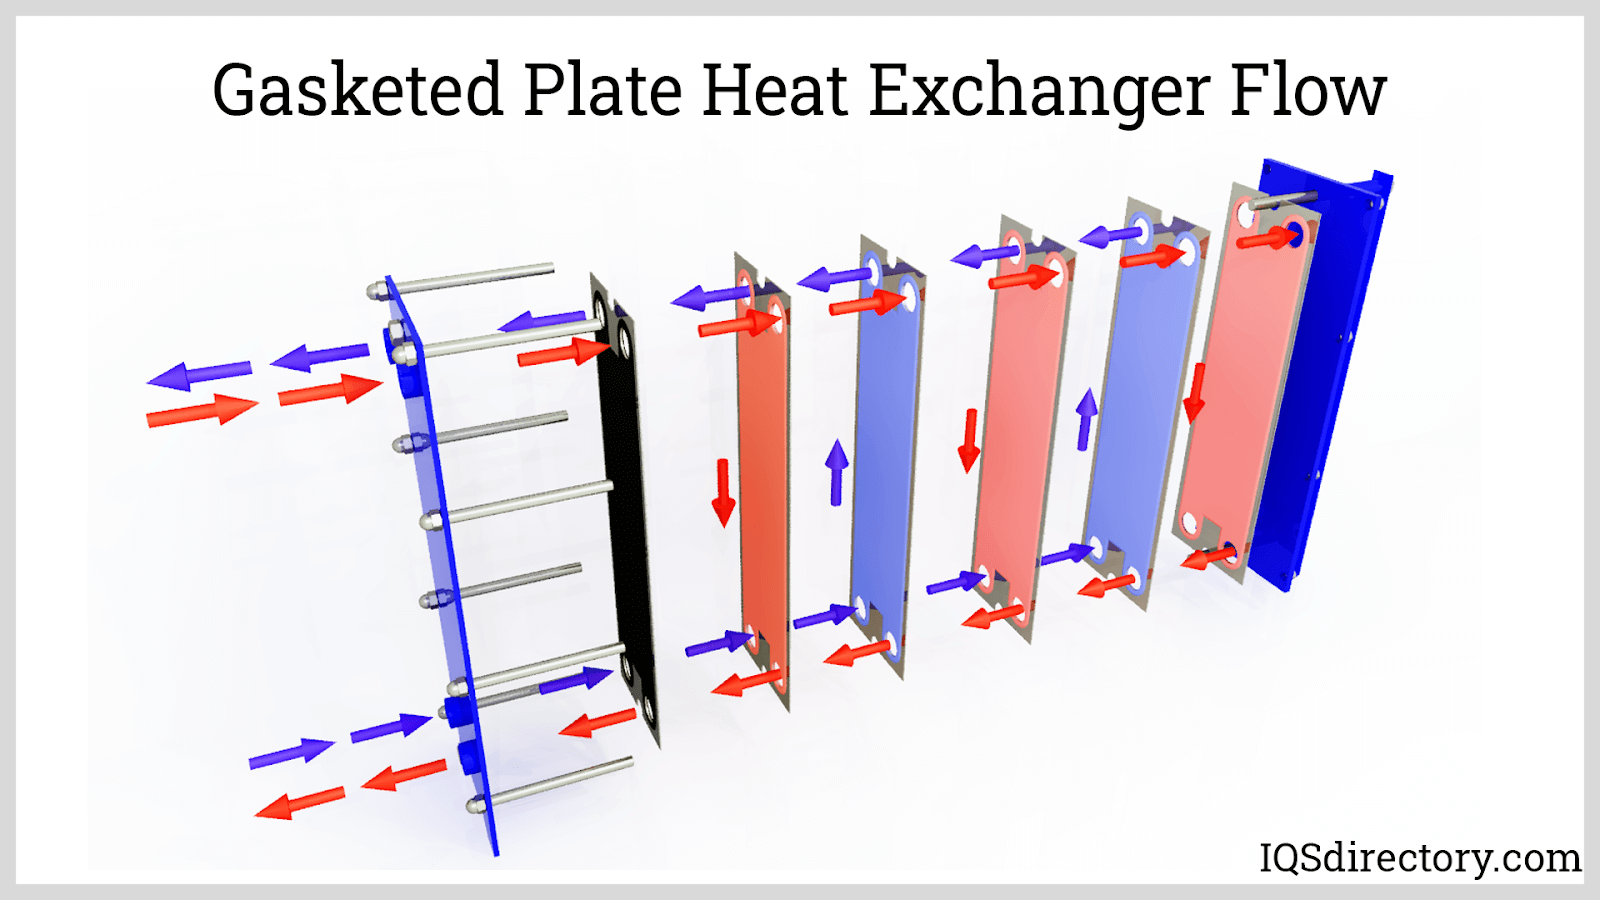 Gasketed Plate Heat Exchanger Flow